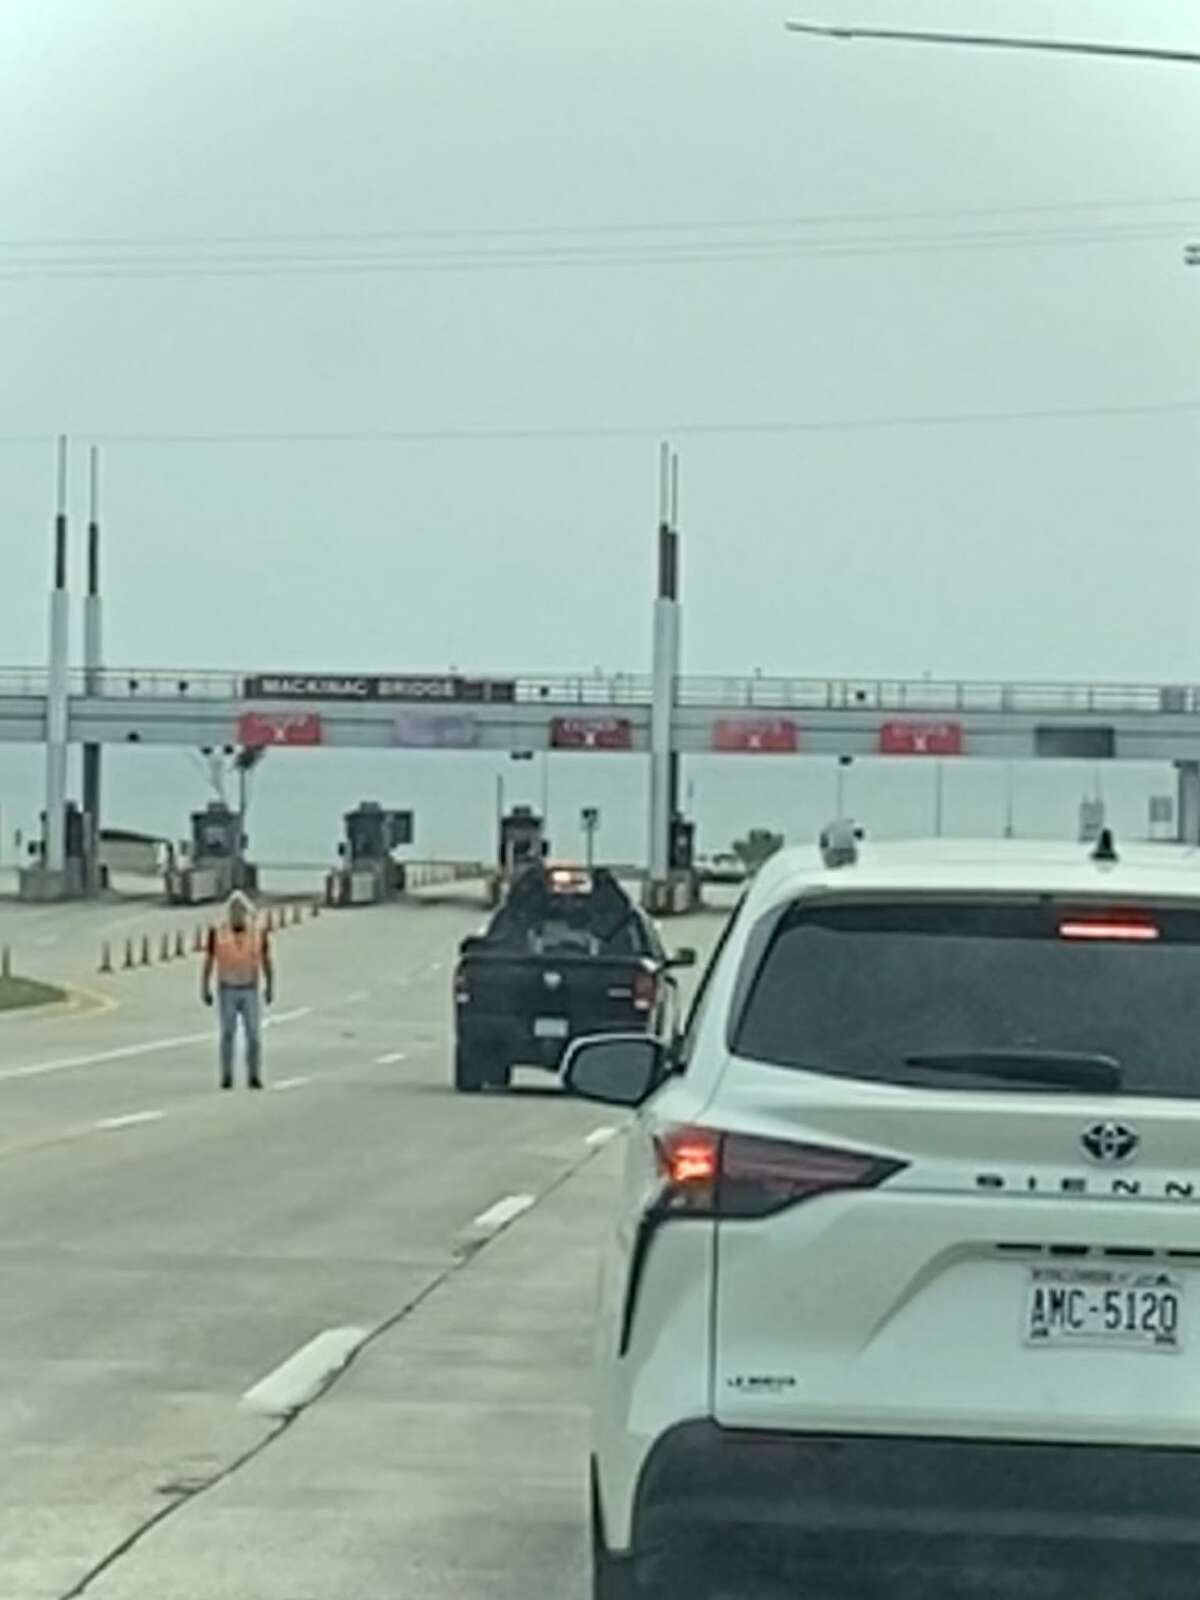 Traffic on I-75 was backed up in both directions for three hours on Sunday afternoon while the Mackinac Bridge was closed so that authorities could investigate a bomb threat.